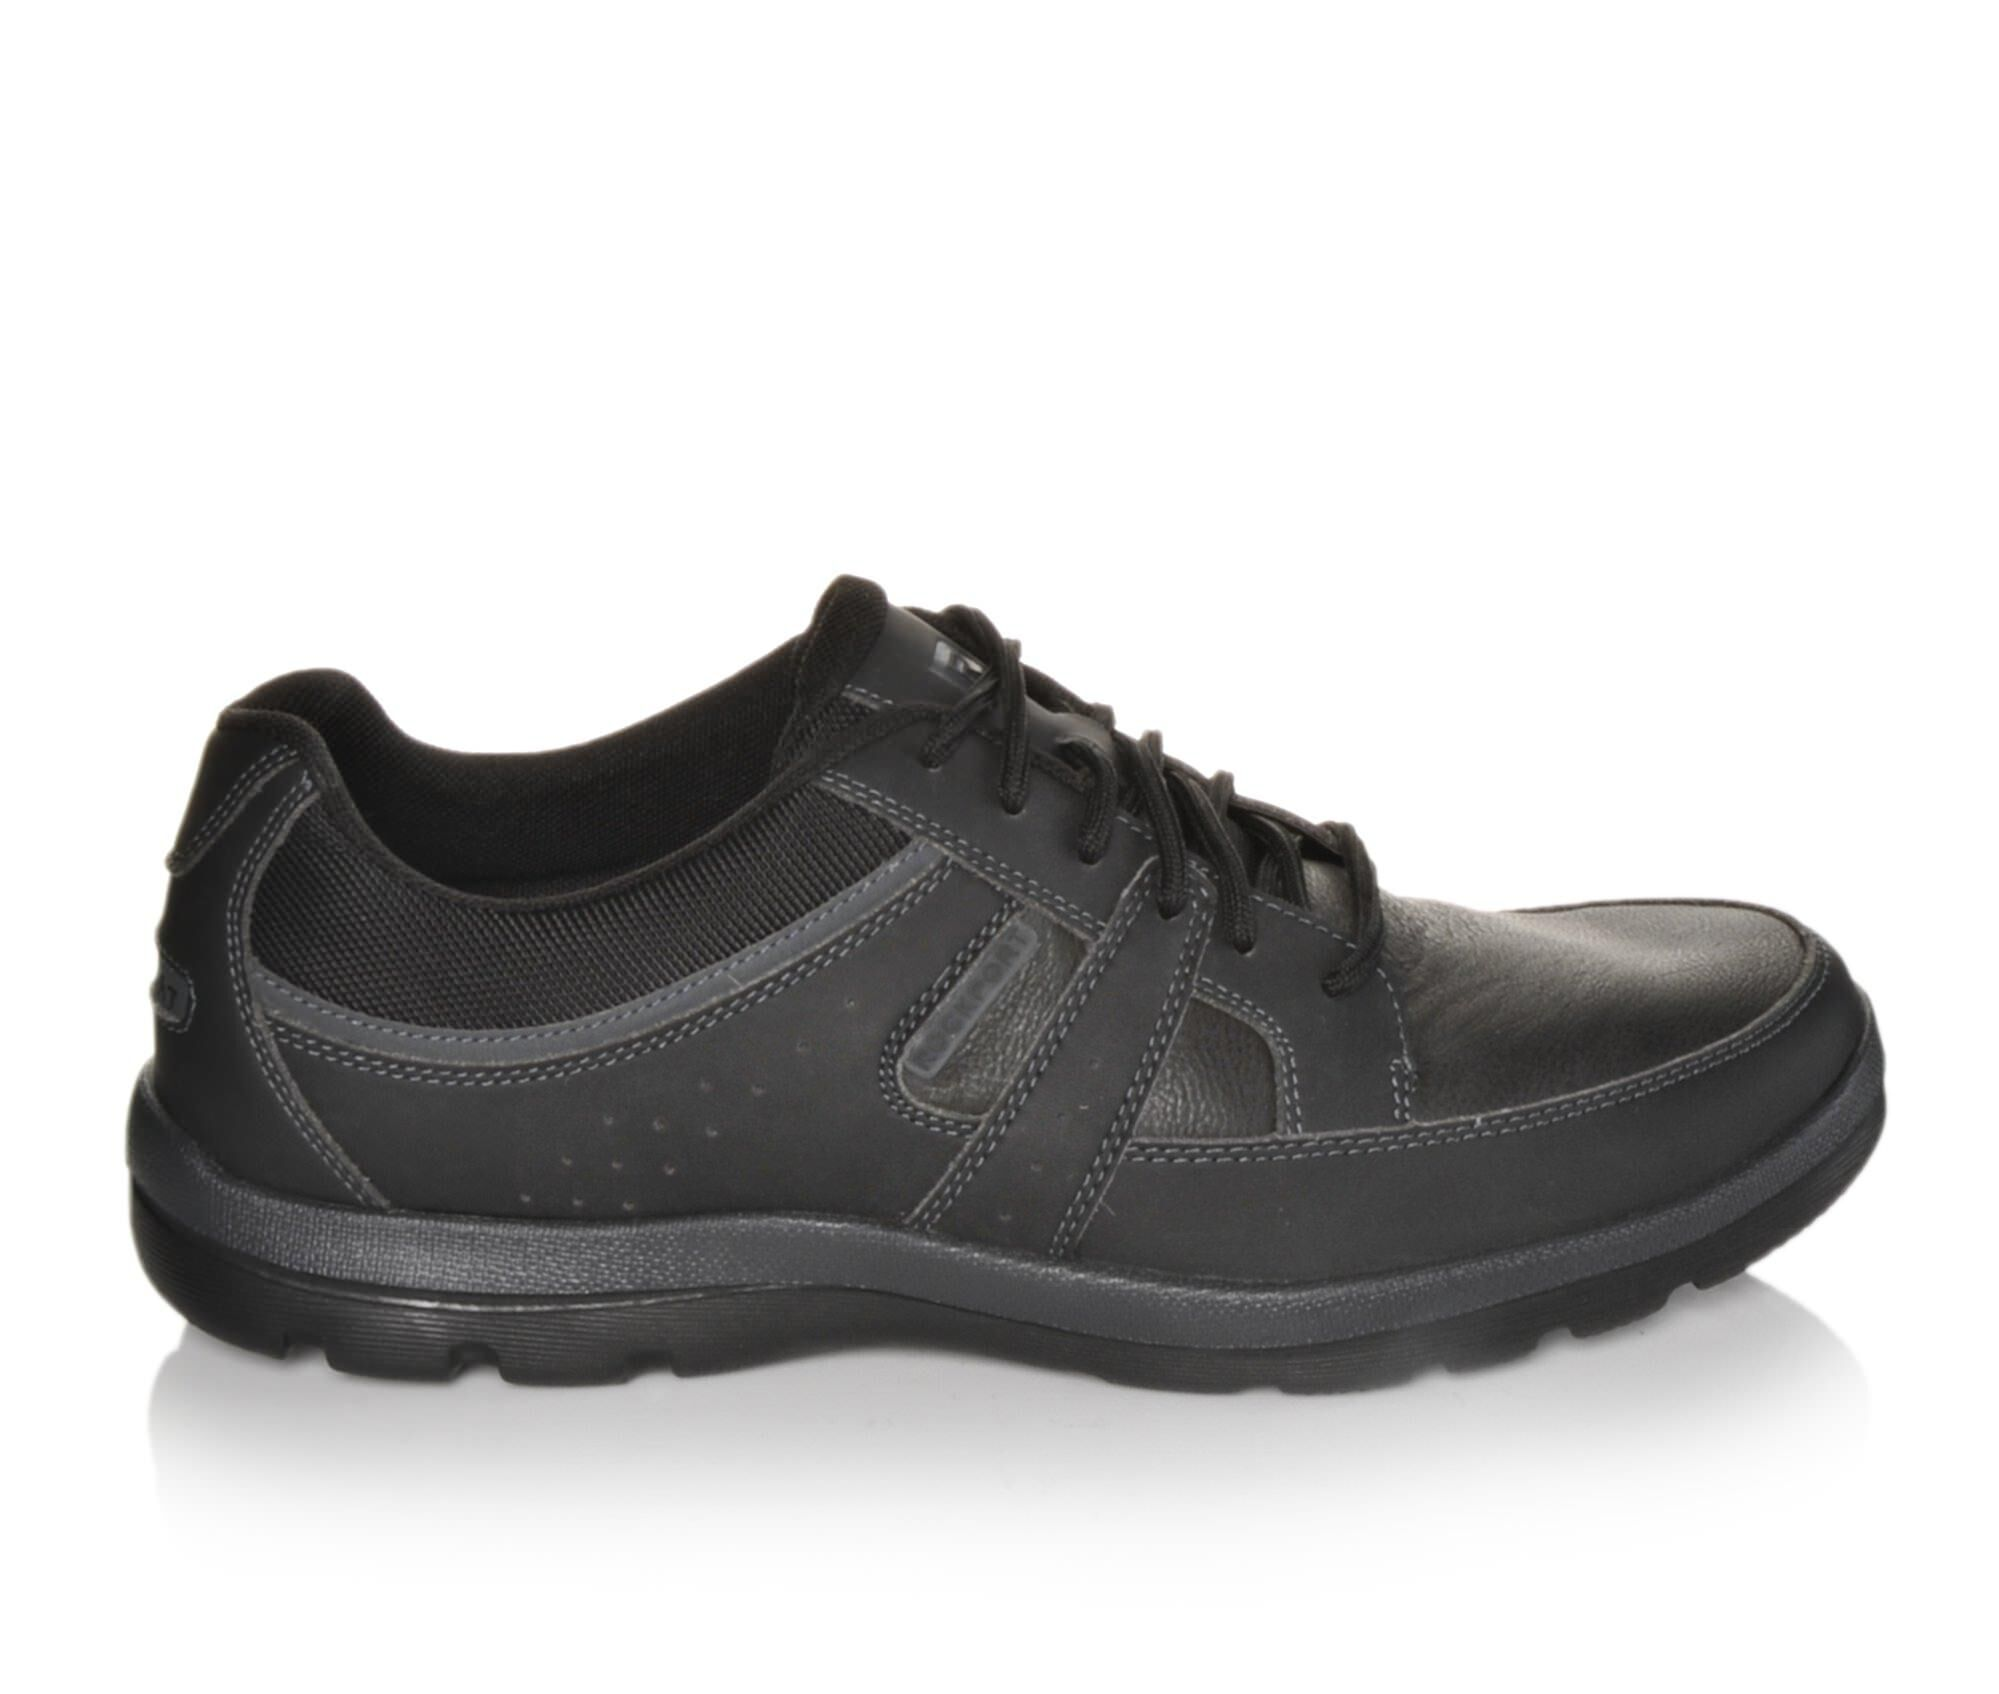 where to buy rockport shoes for men near meaning in tamil 960800